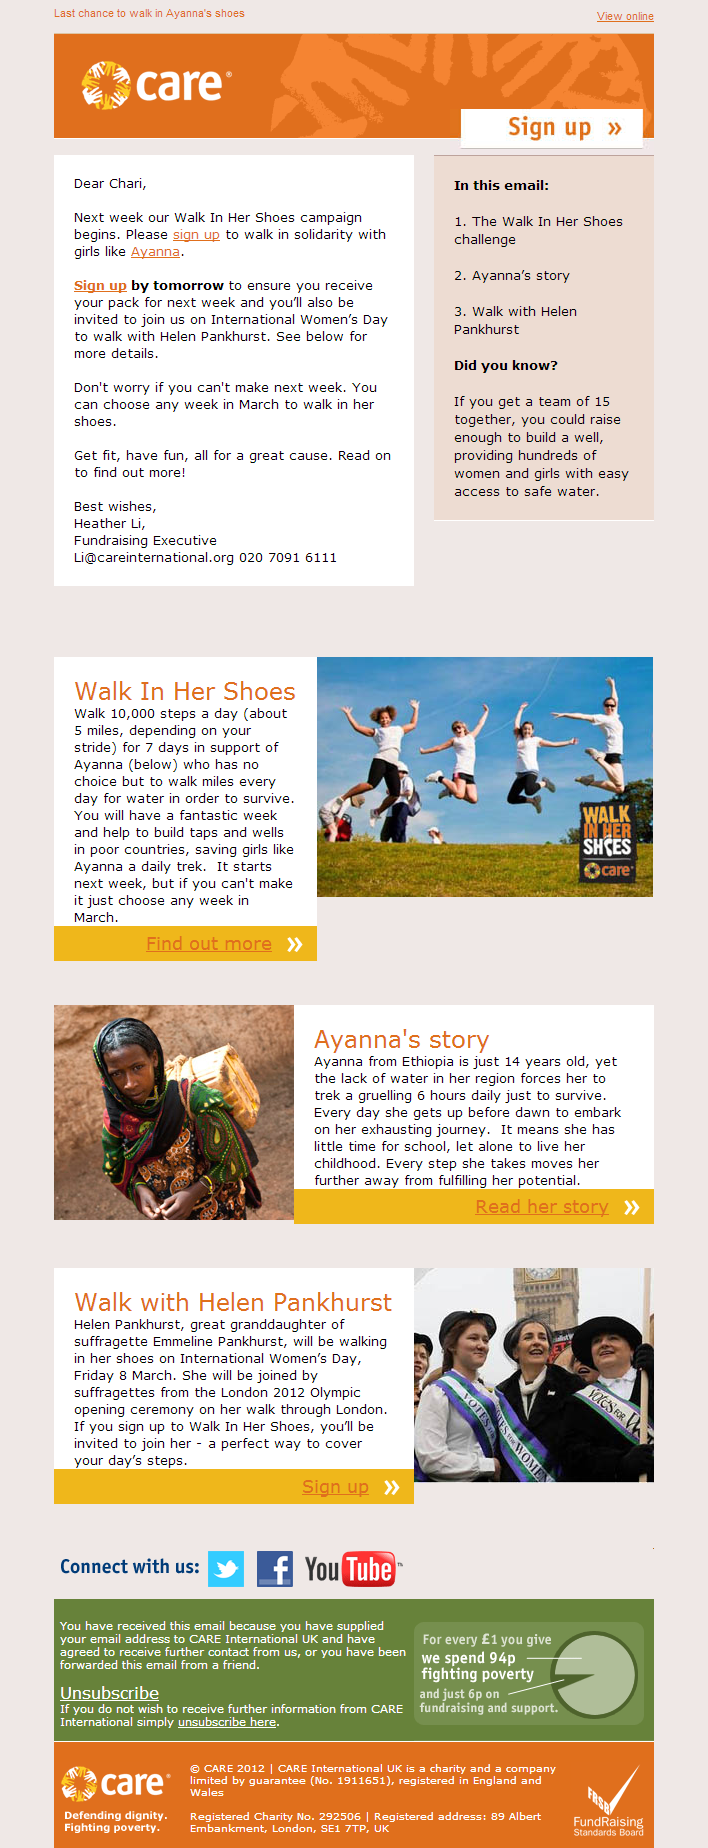 Care International – Next week join a suf​fragette to walk in ​her shoes​